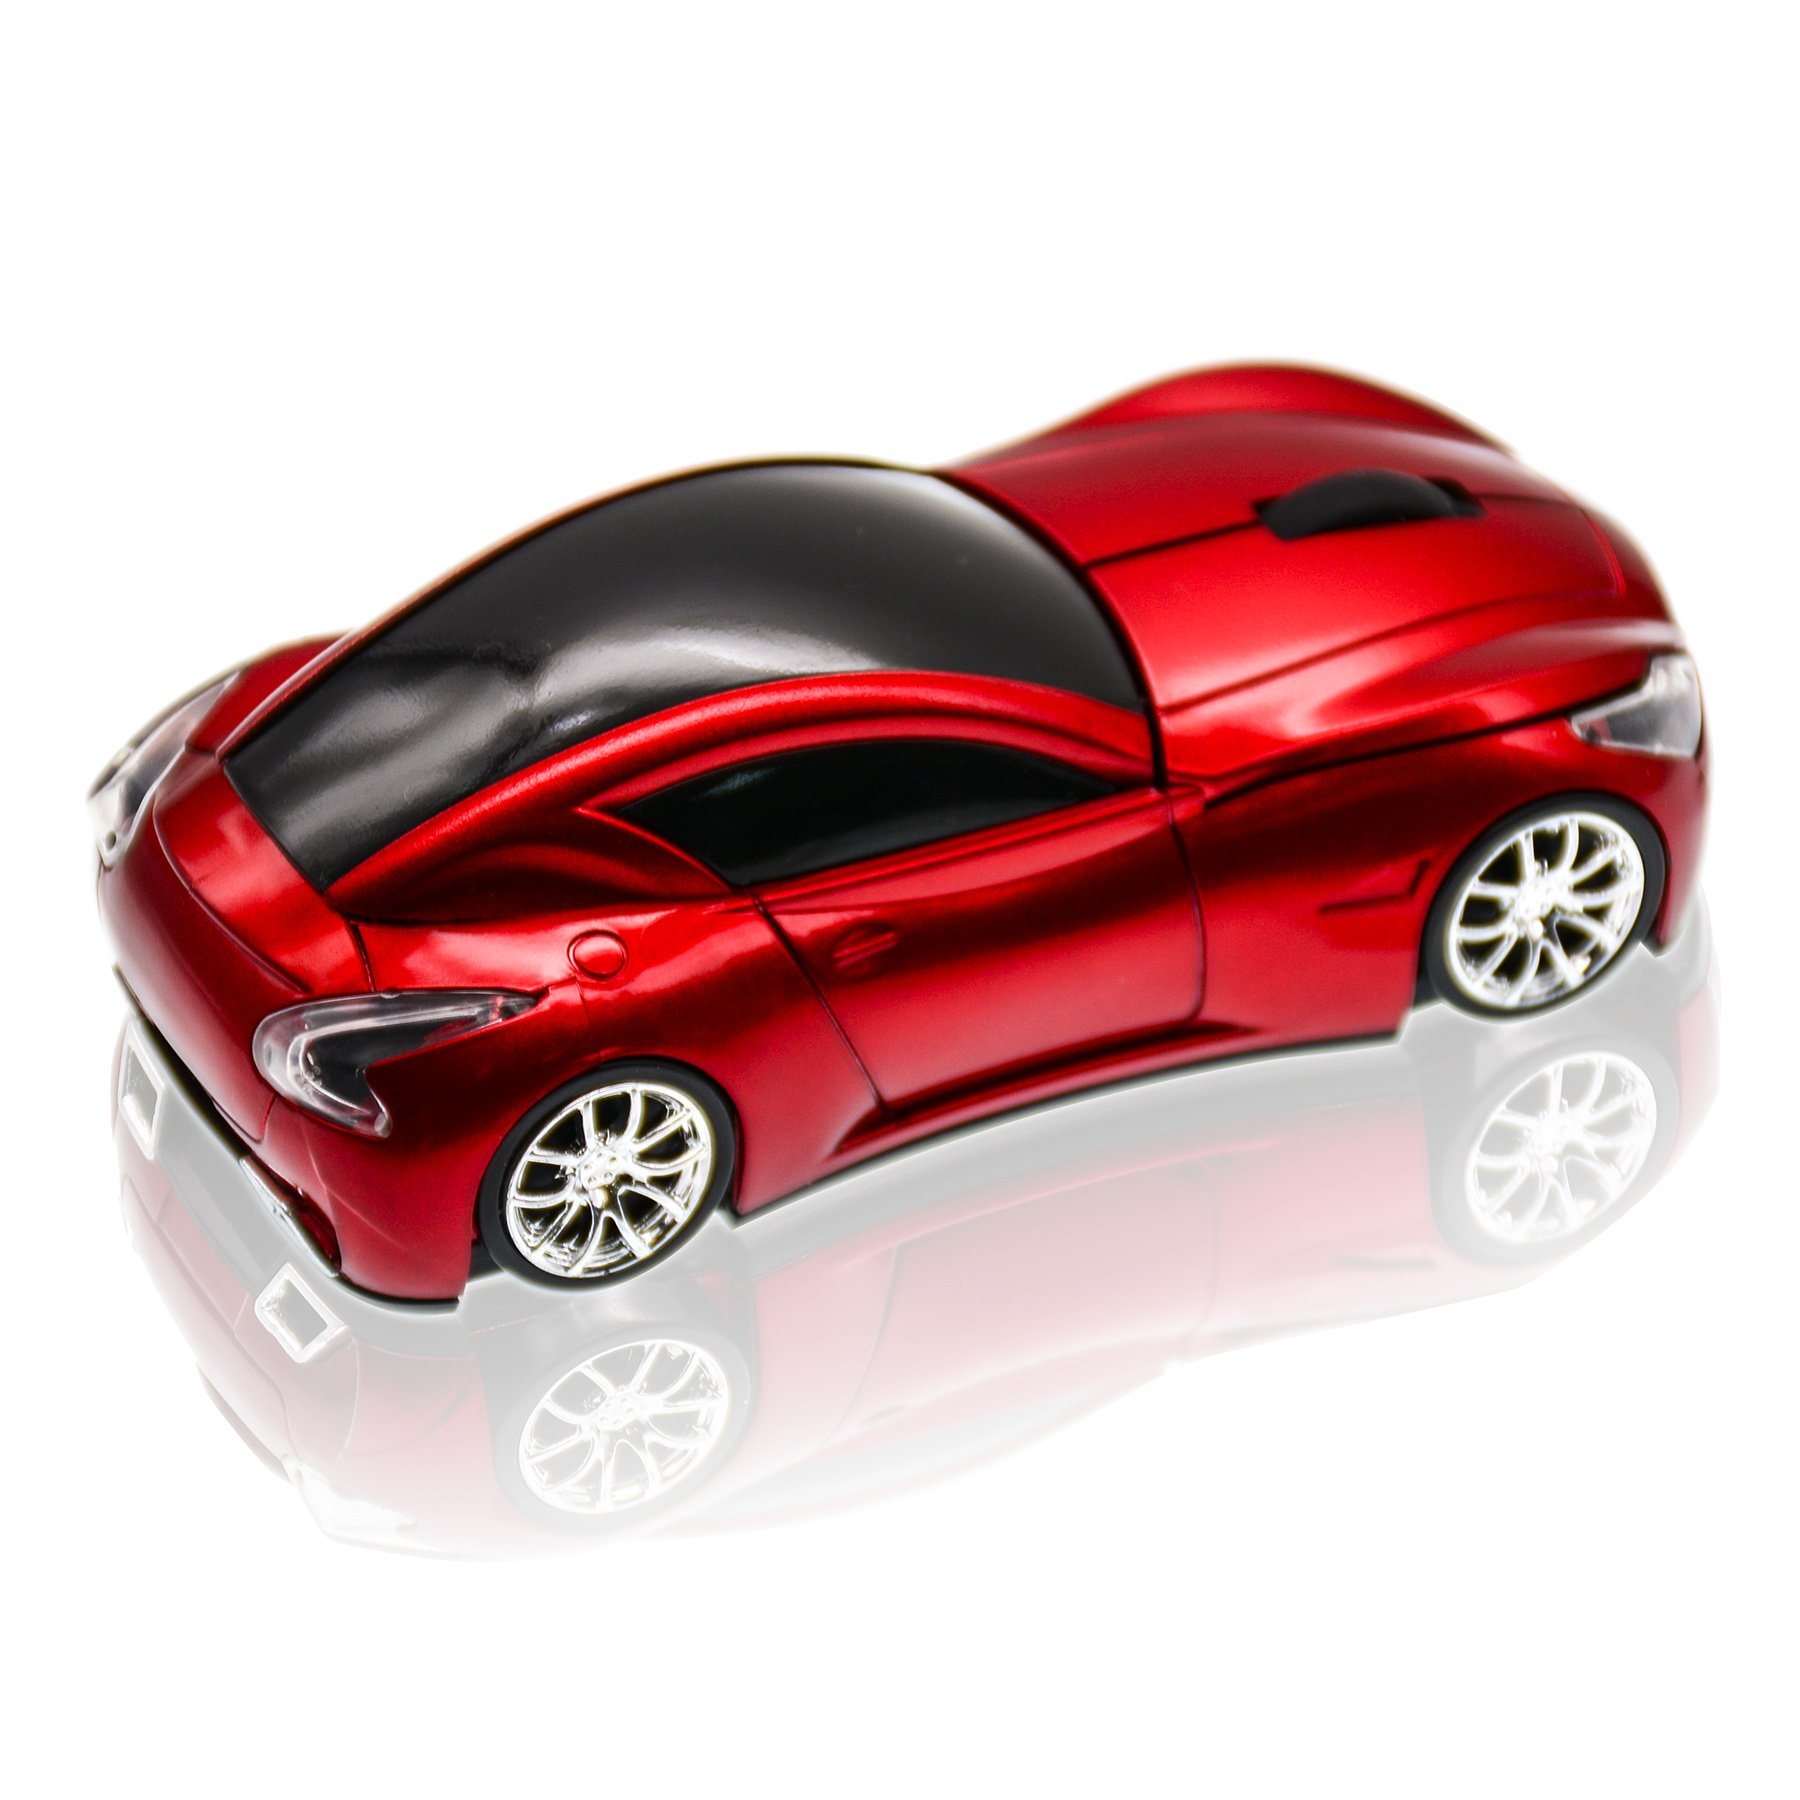 JLER 2.4GHz Sports Car Shape Wireless Ergonomic Mice Optical Mouse for PC (red)